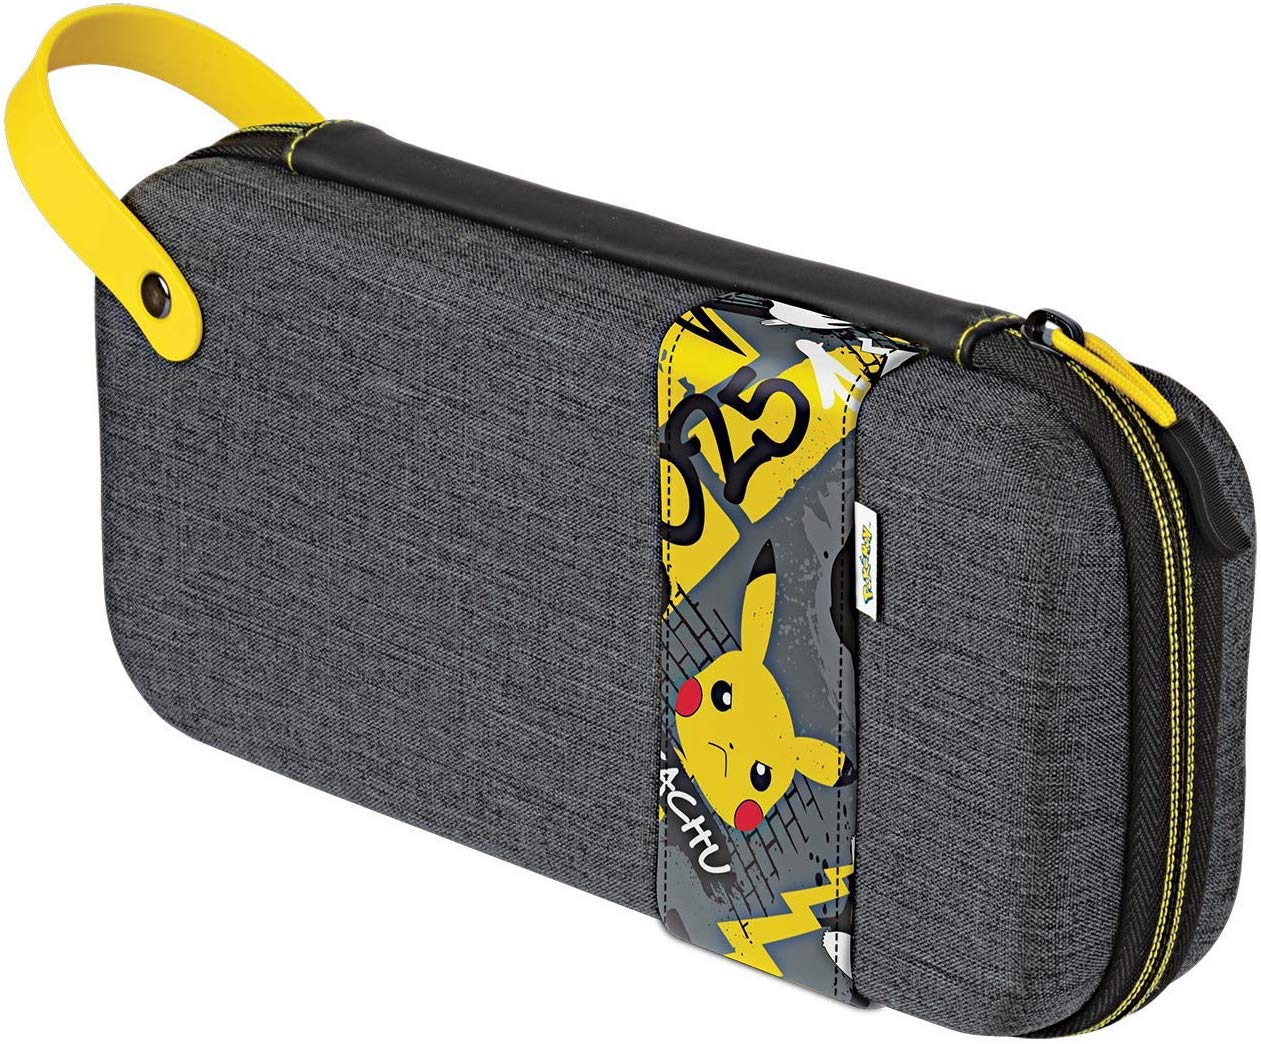 New PDP Switch Carrying Cases Now Up For Pre-Order, Compatible With Switch Lite